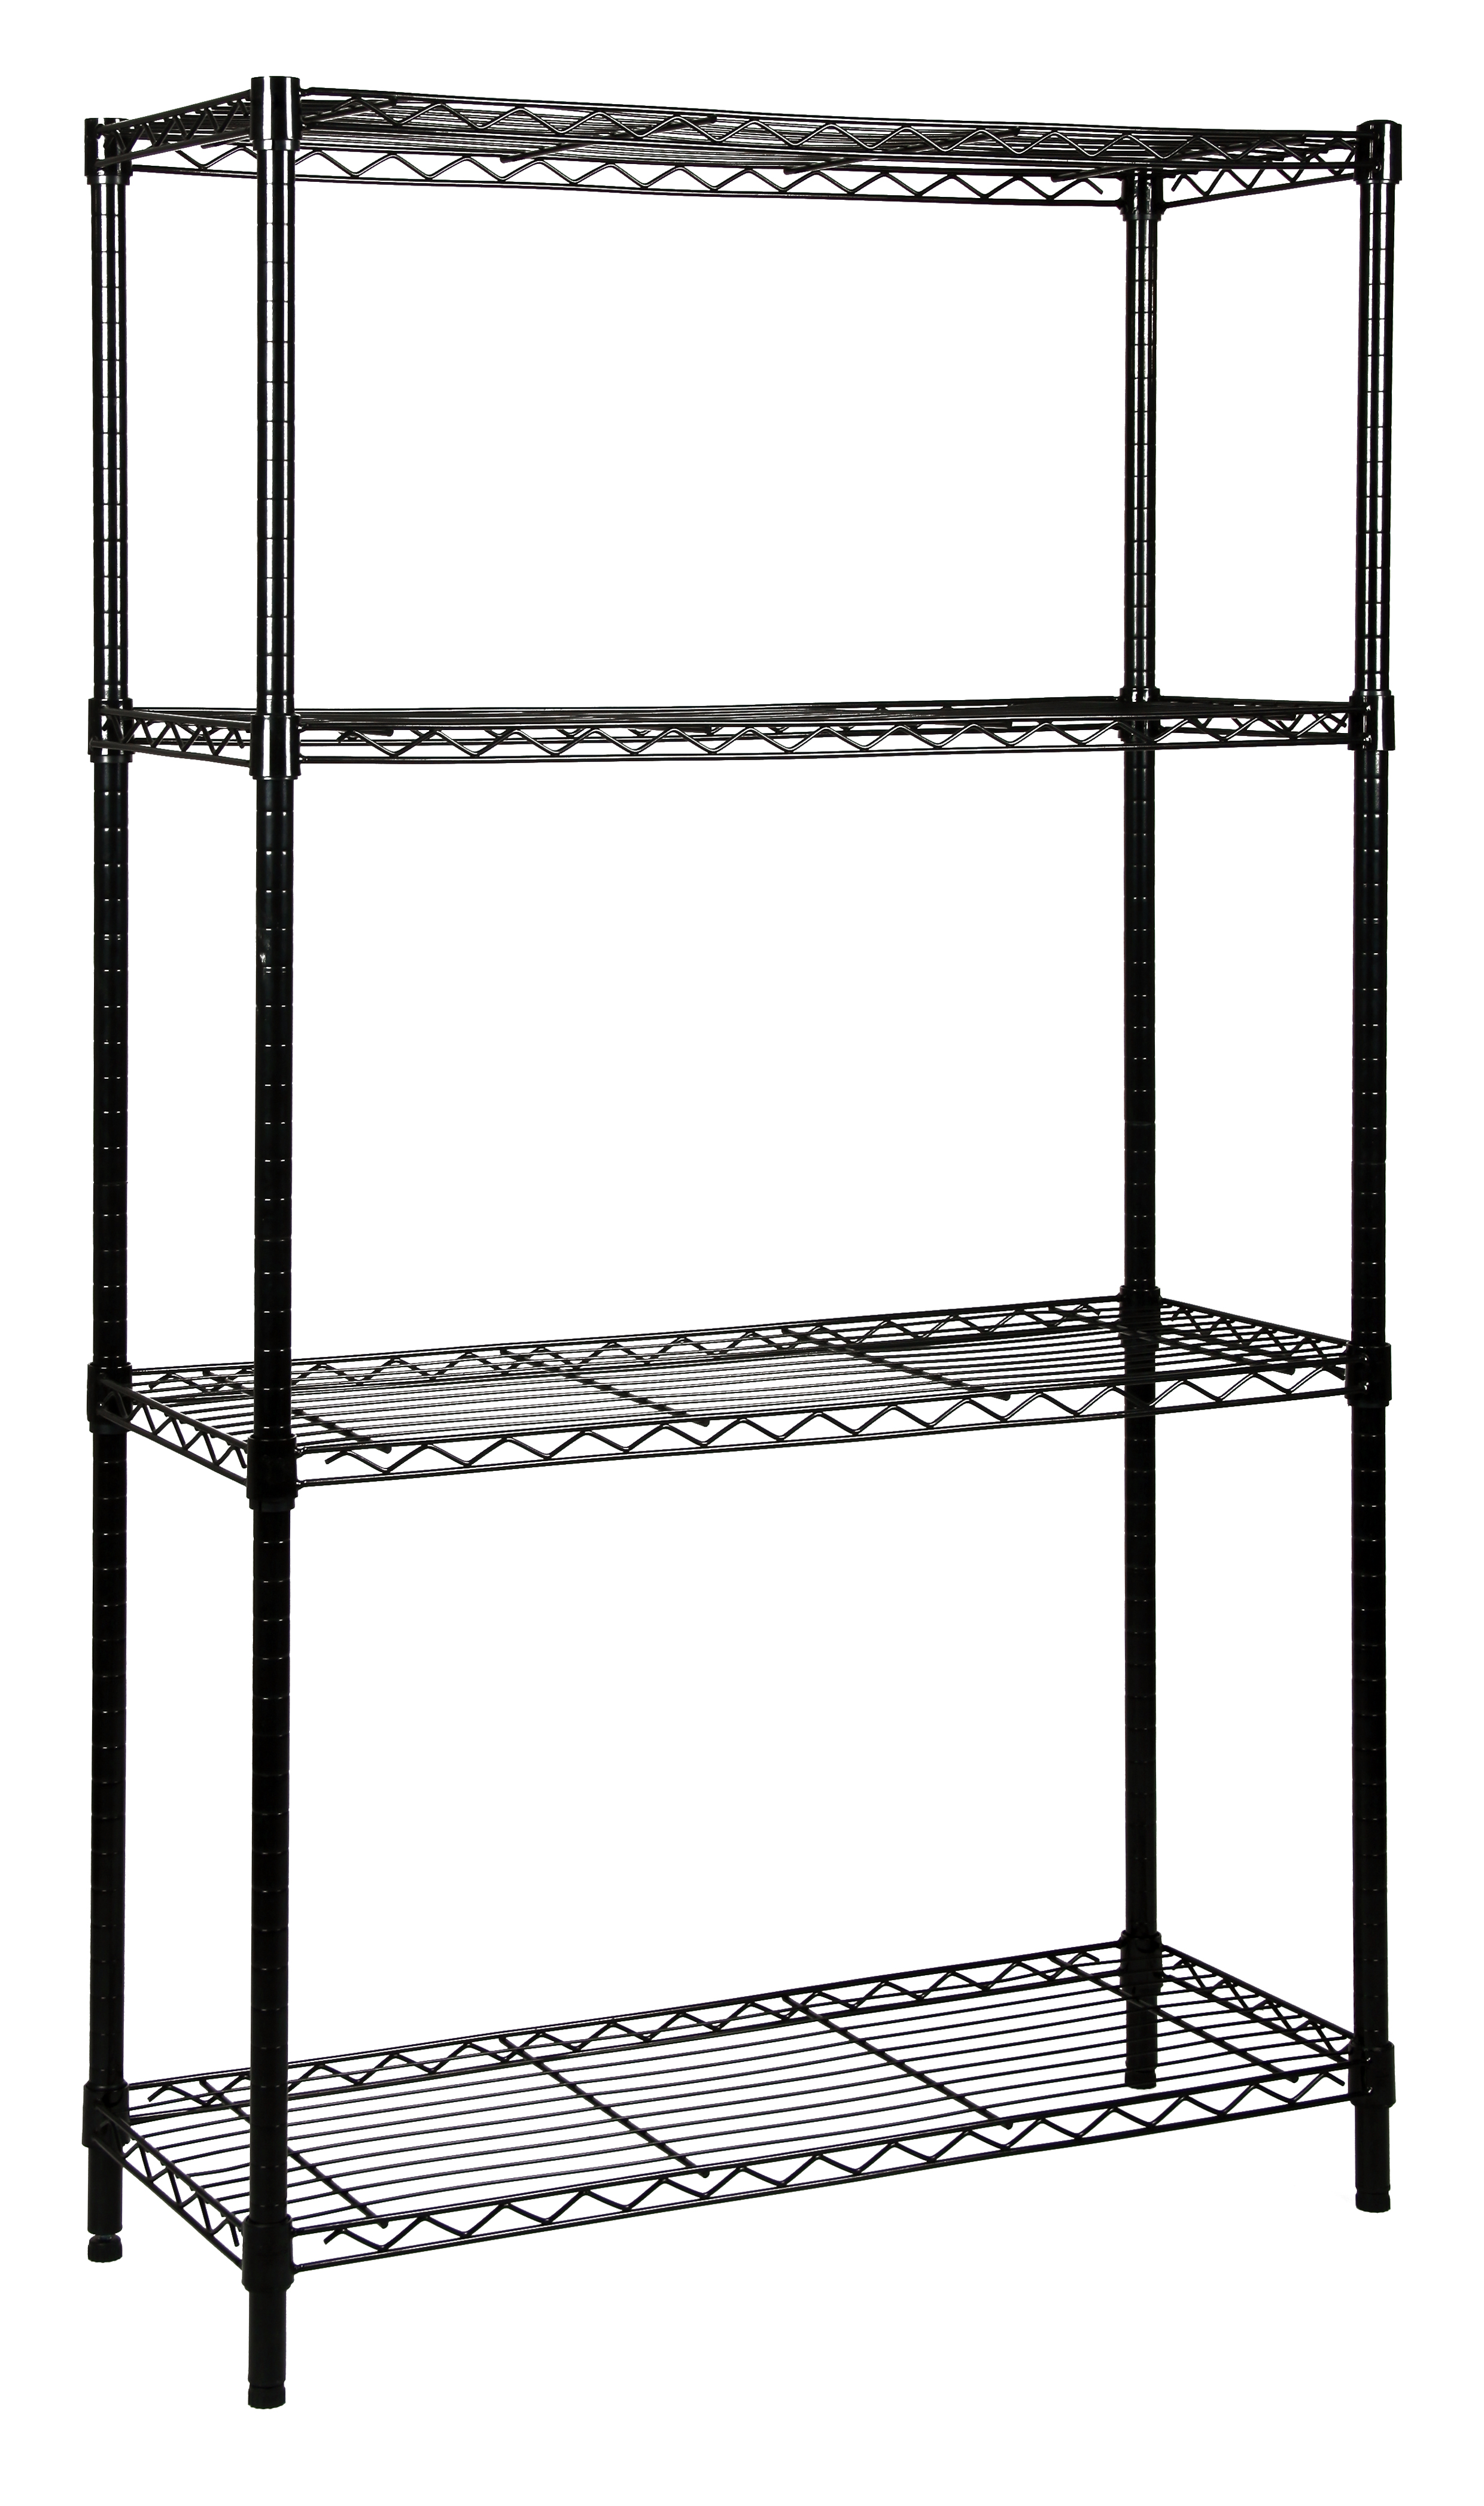 Black Wire Shelving Click here to Browse